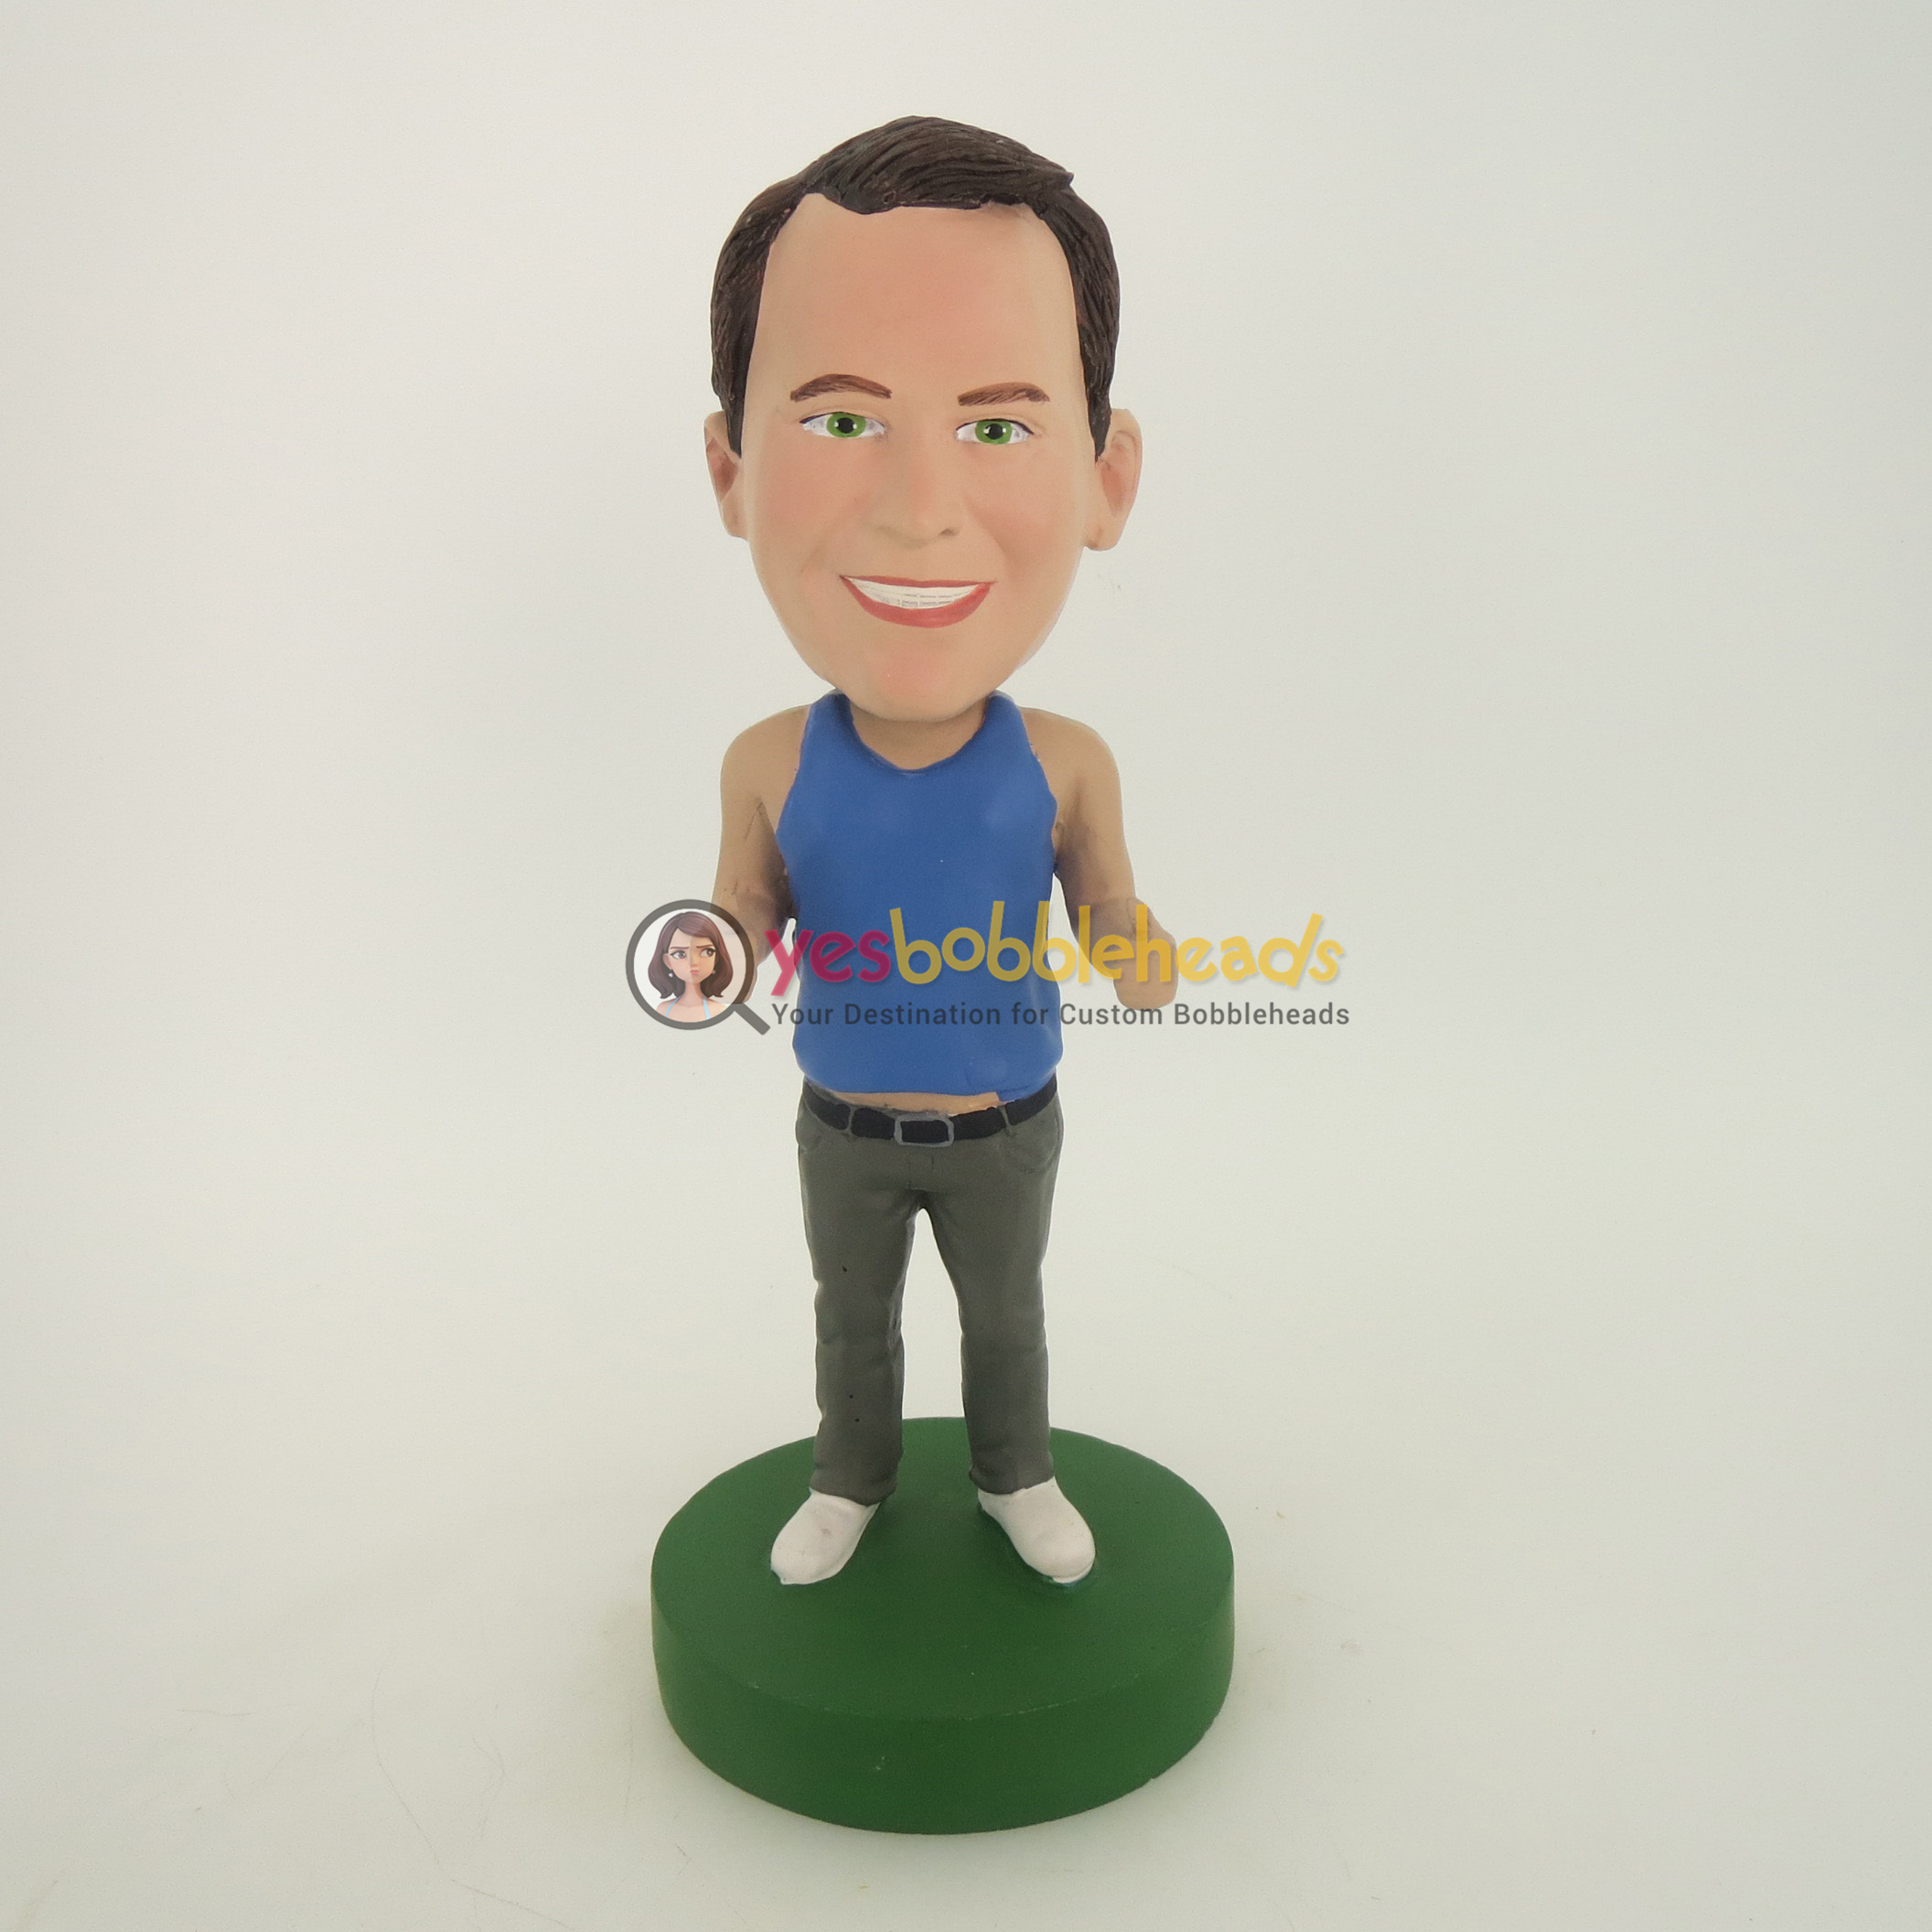 Picture of Custom Bobblehead Doll: Casual Man In Blue Vest